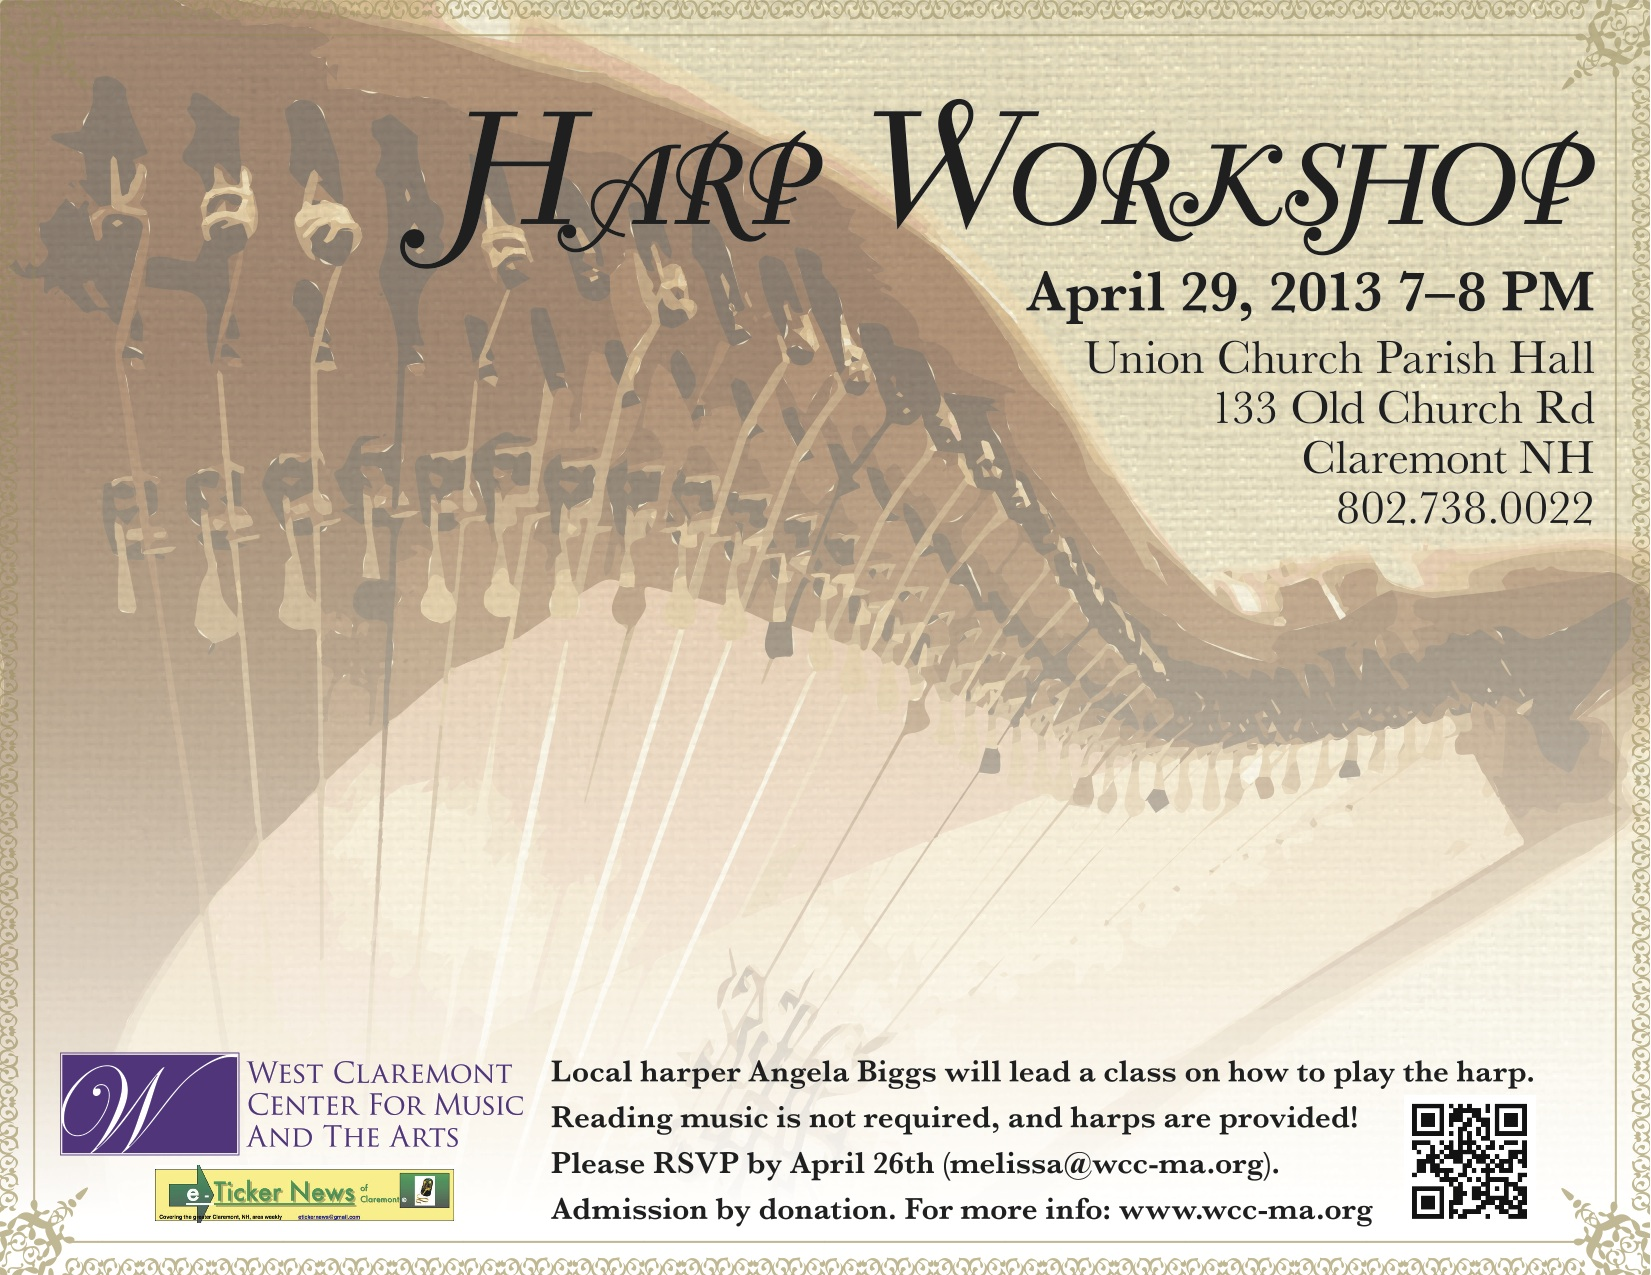 Harp Workshop next week!